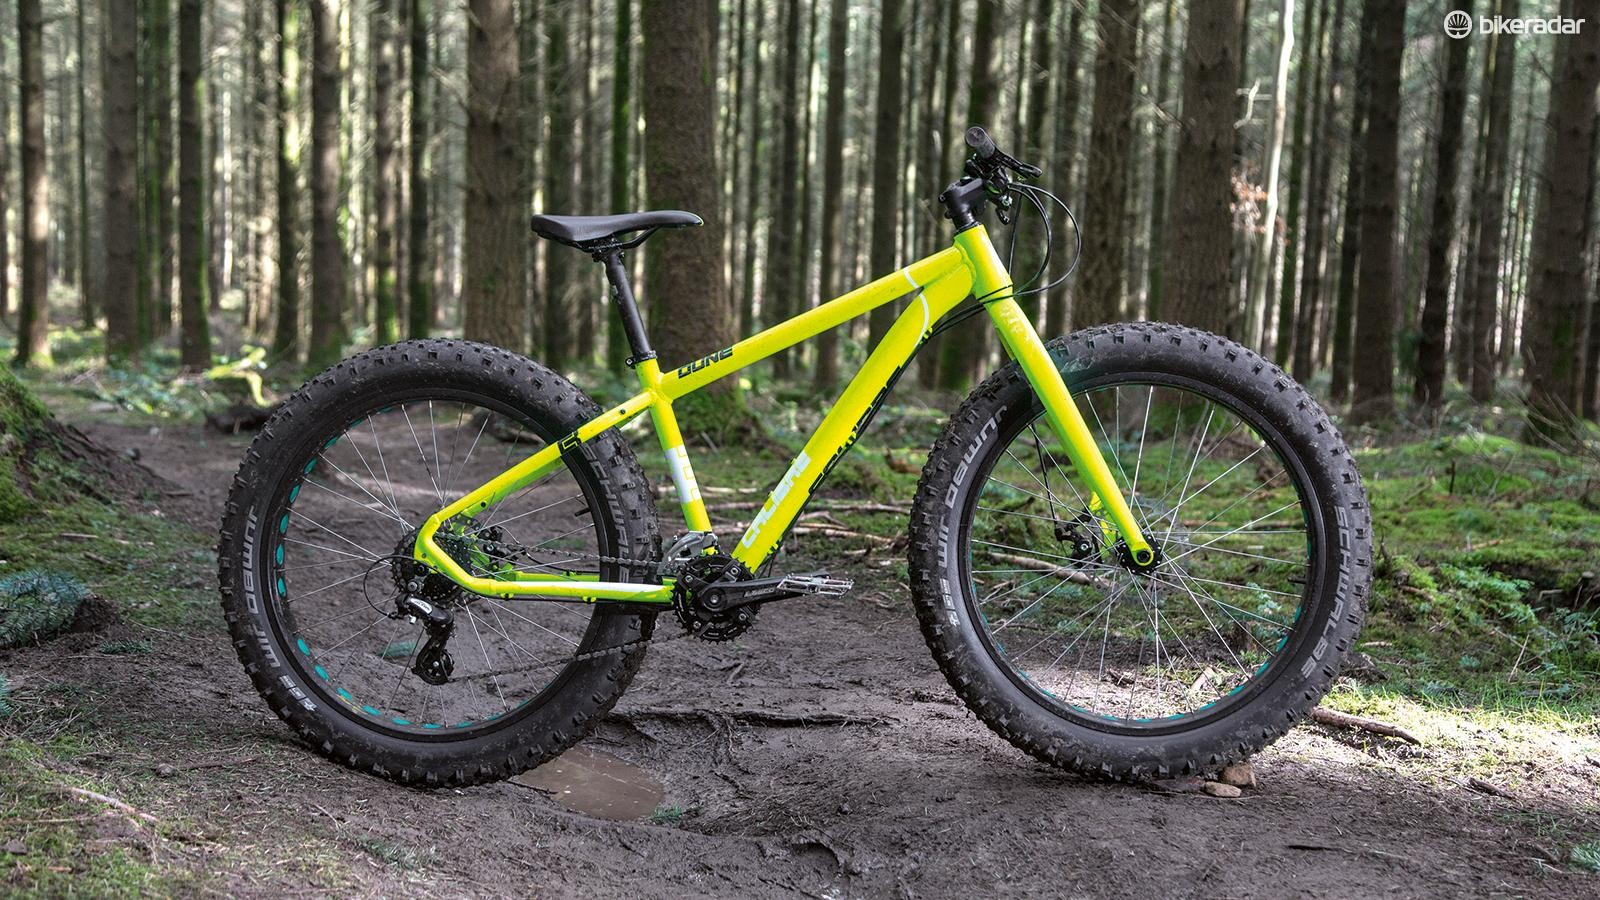 The slack-angled Dune is designed more for trail centre fun than trips into the wild